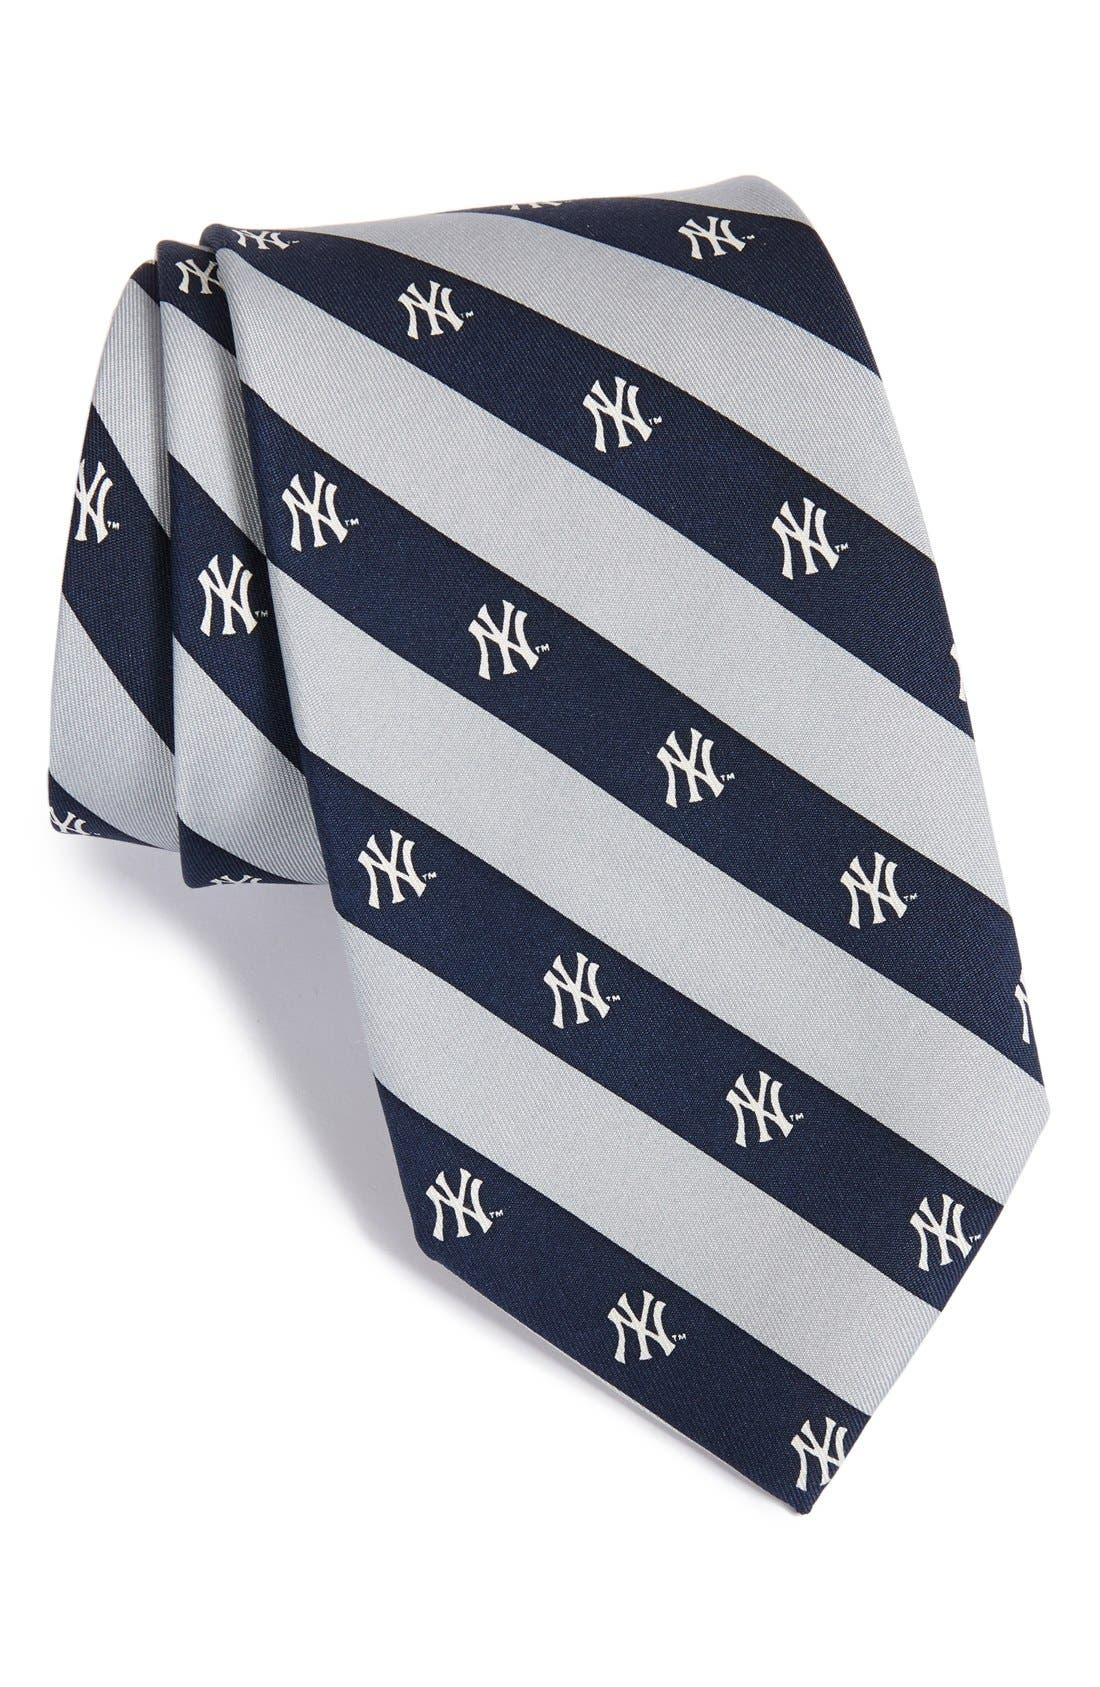 vineyard vines New York Yankees - MLB Print Silk Tie